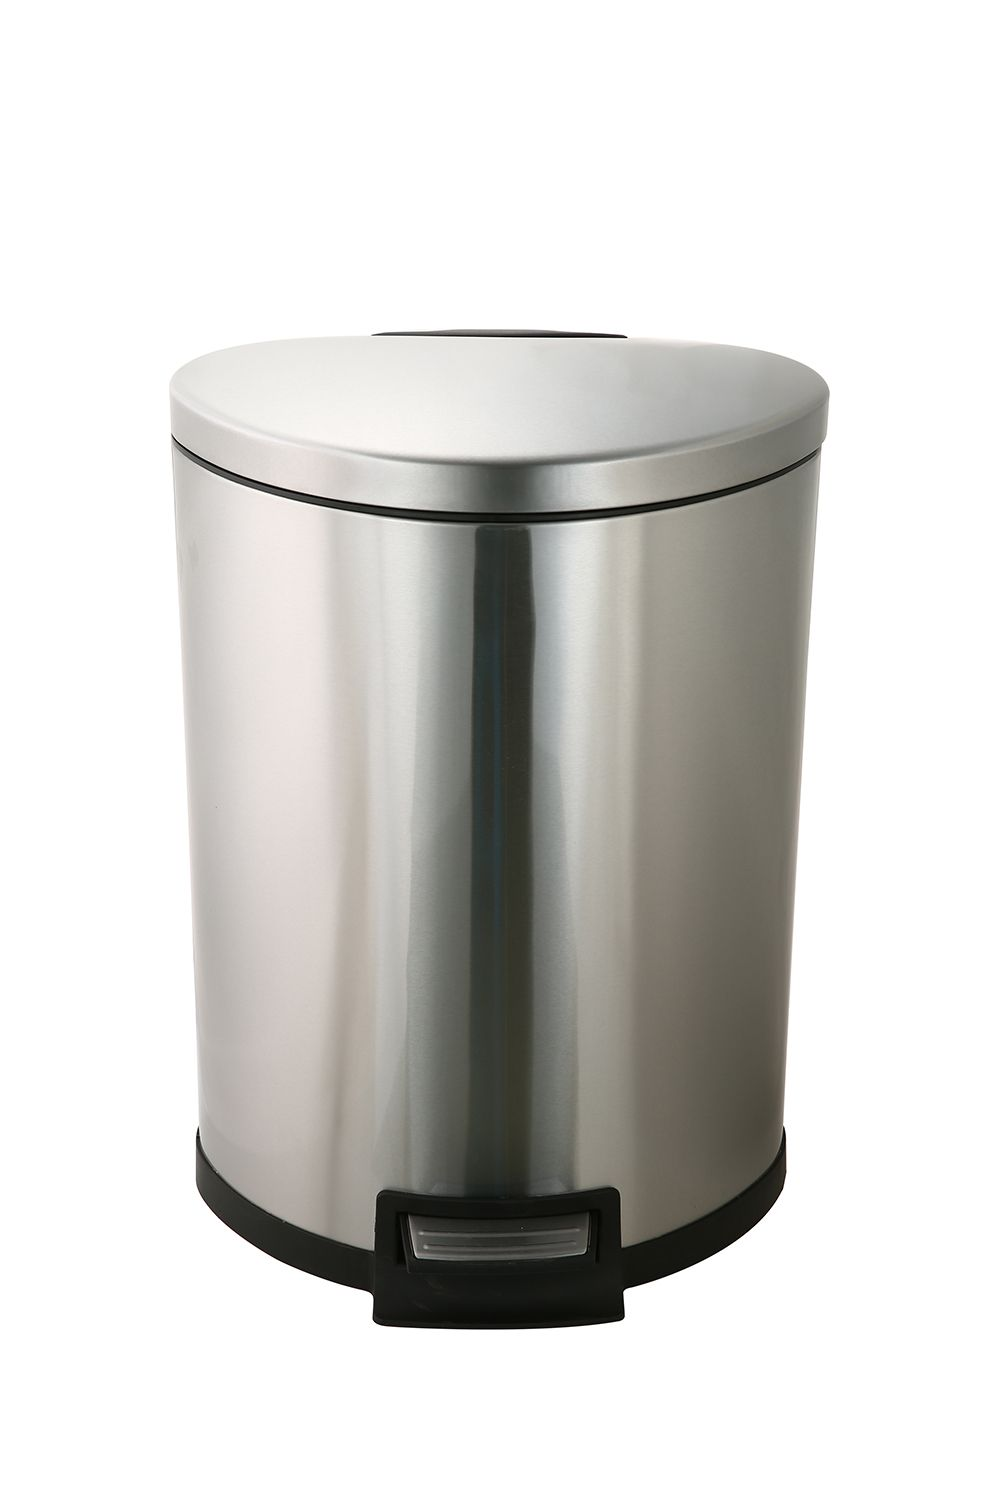 08721db6853793eaf3b40d7f4dbd9fb9 - Better Homes And Gardens Stainless Steel